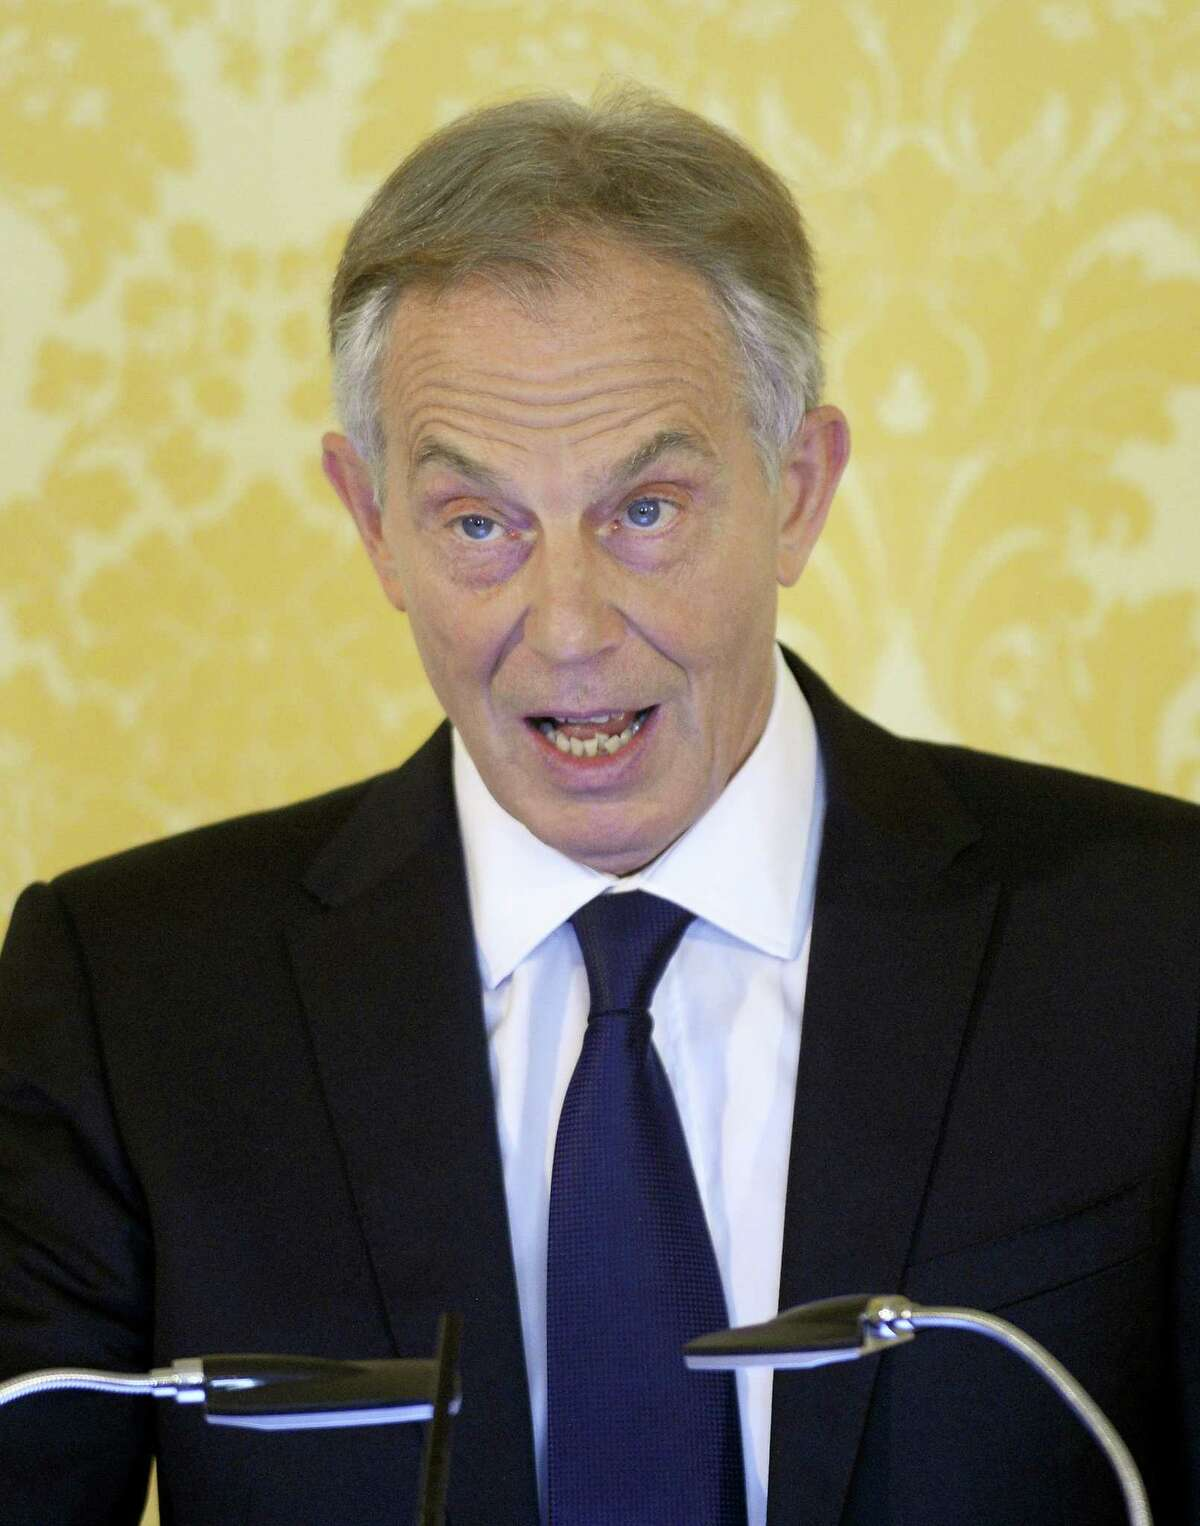 """British former Prime Minister tony Blair holds a press conference at Admiralty House, London, after retired civil servant John Chilcot presented The Iraq Inquiry Report on Wednesday, July 6, 2016. An emotional Blair told at a news conference that going to war in Iraq was """"the hardest, most momentous, most agonizing decision I took in my 10 years as British prime minister."""""""